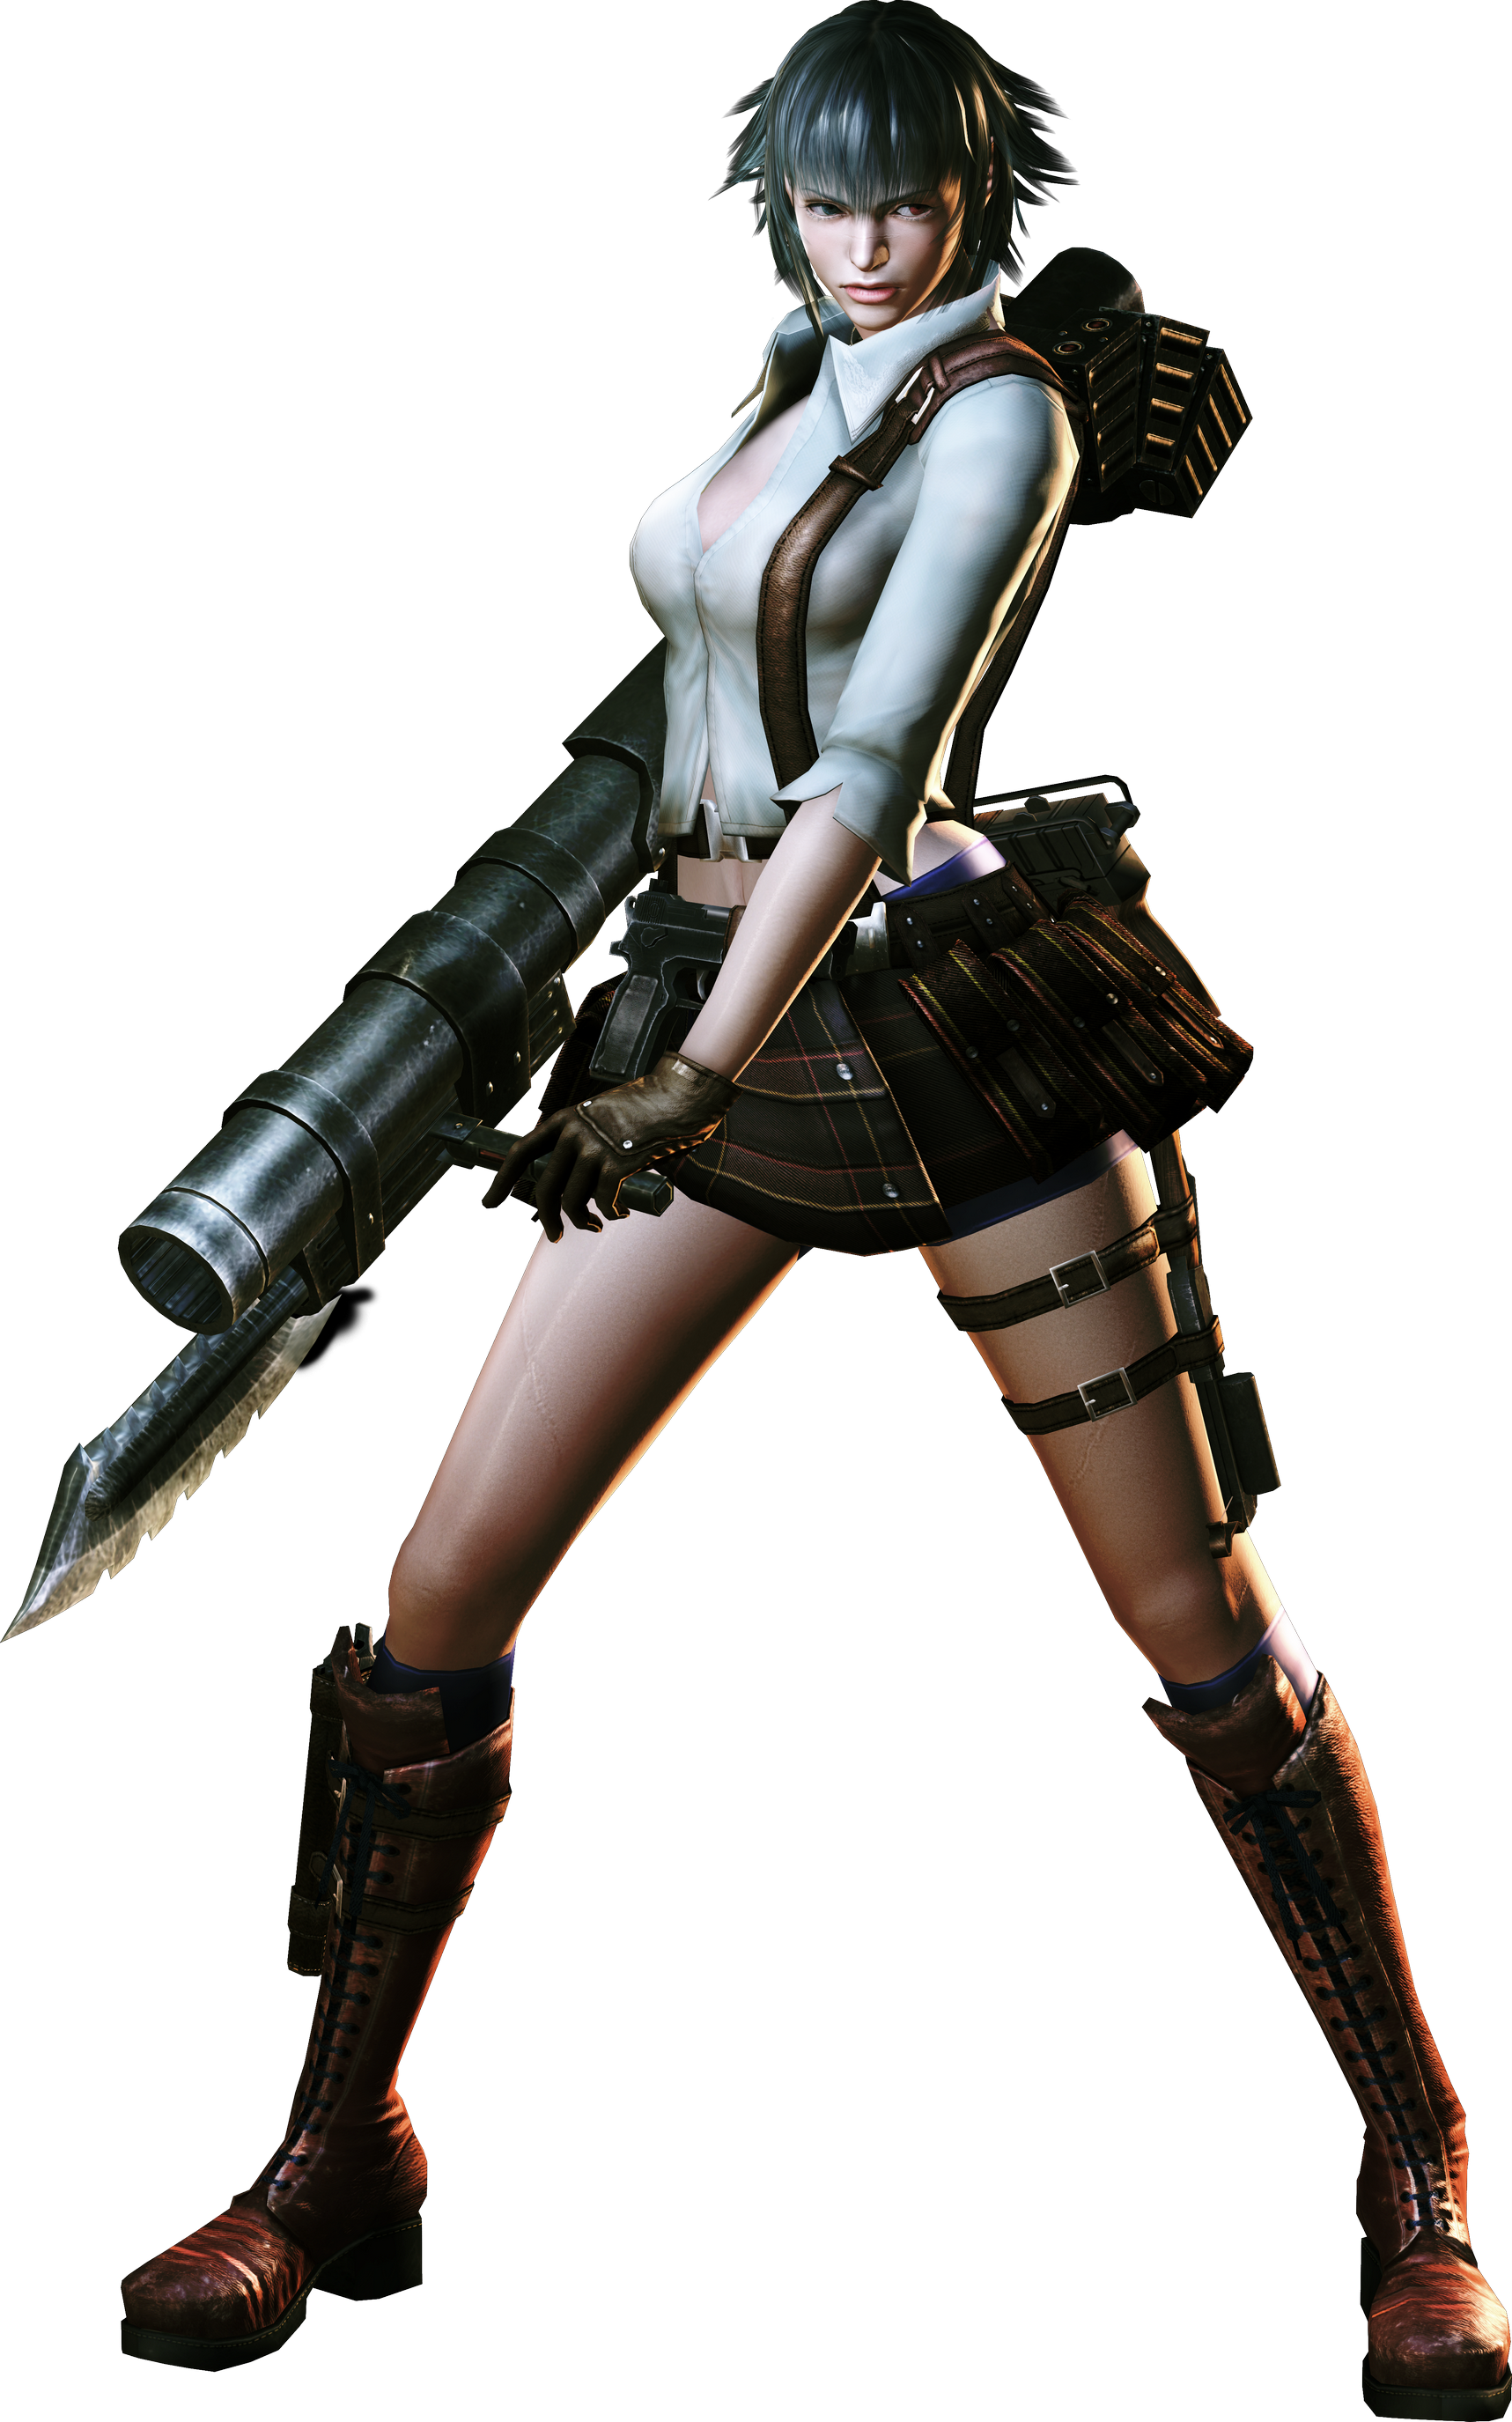 Devil may cry 3 png. Image dmc lady model